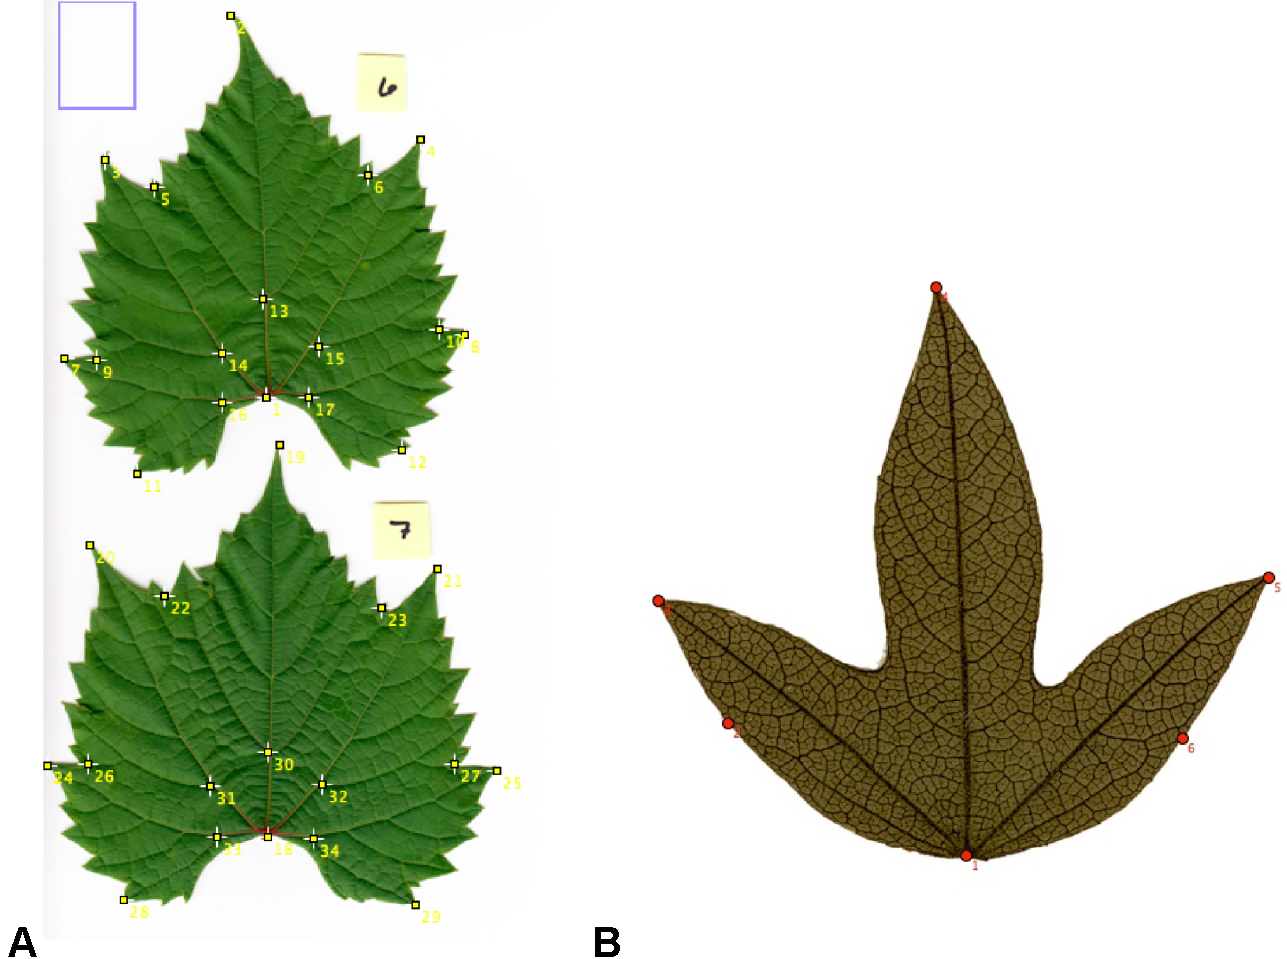 What distinguishes simple leaves from complex